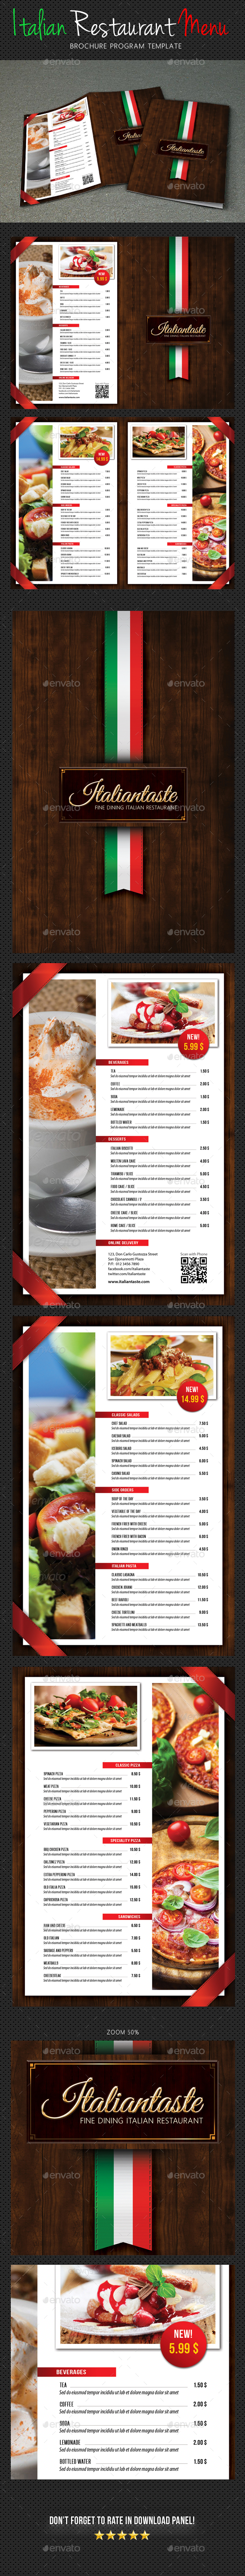 Italian Menu Restaurant Brochure - Food Menus Print Templates